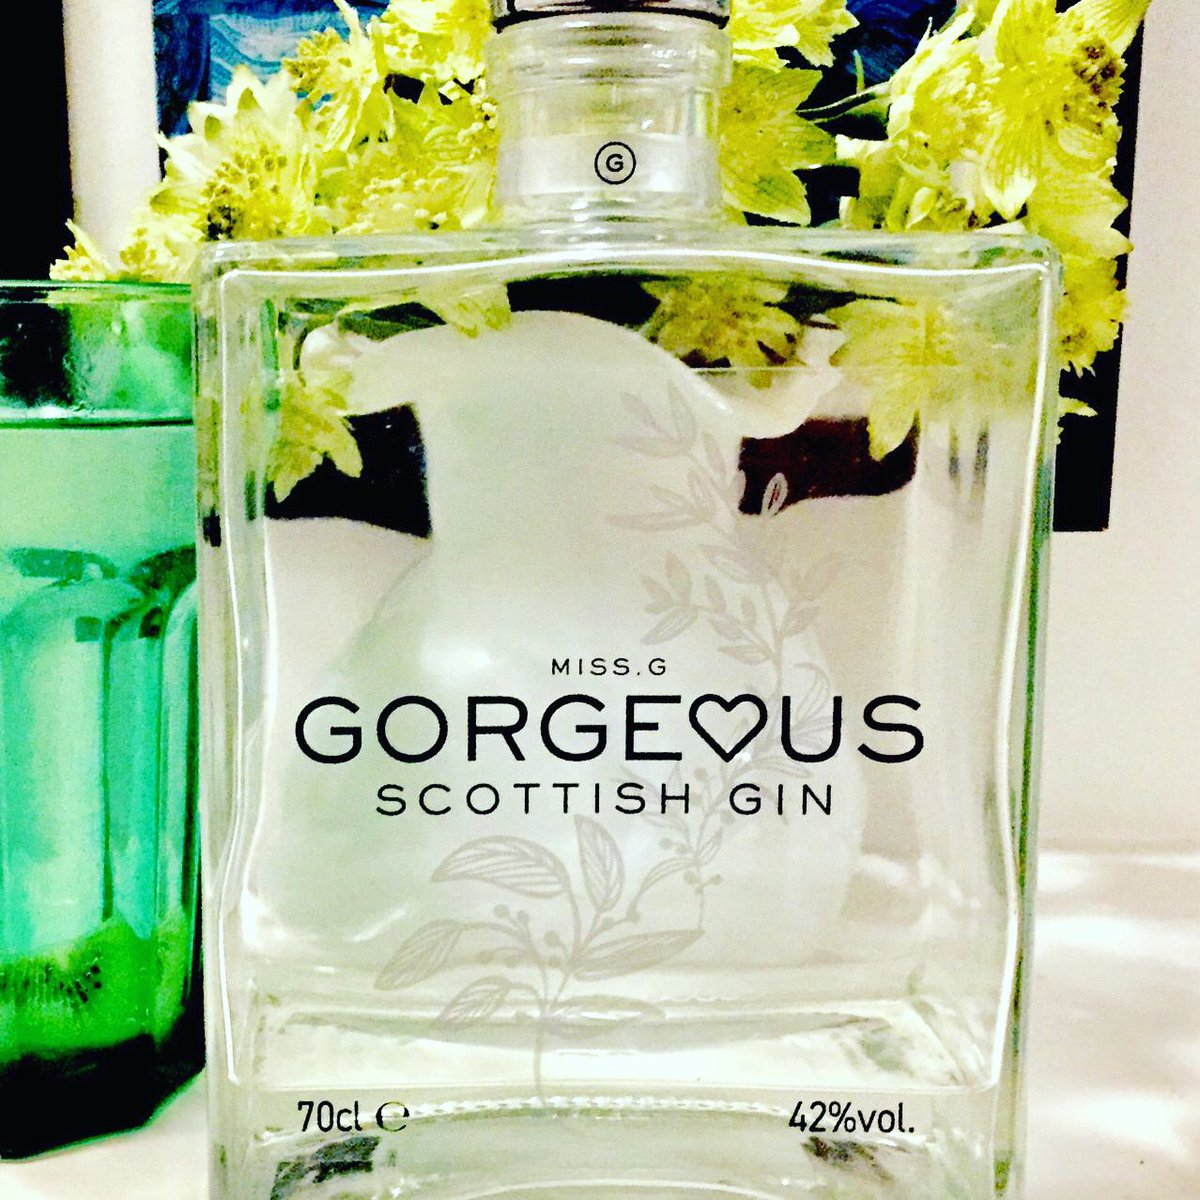 #refreshing #gorgeous #scottish #gin #craftgin #smallbatch #delicious  http://www.gorgeousgin.com  pic.twitter.com/wAeq3EoDN1